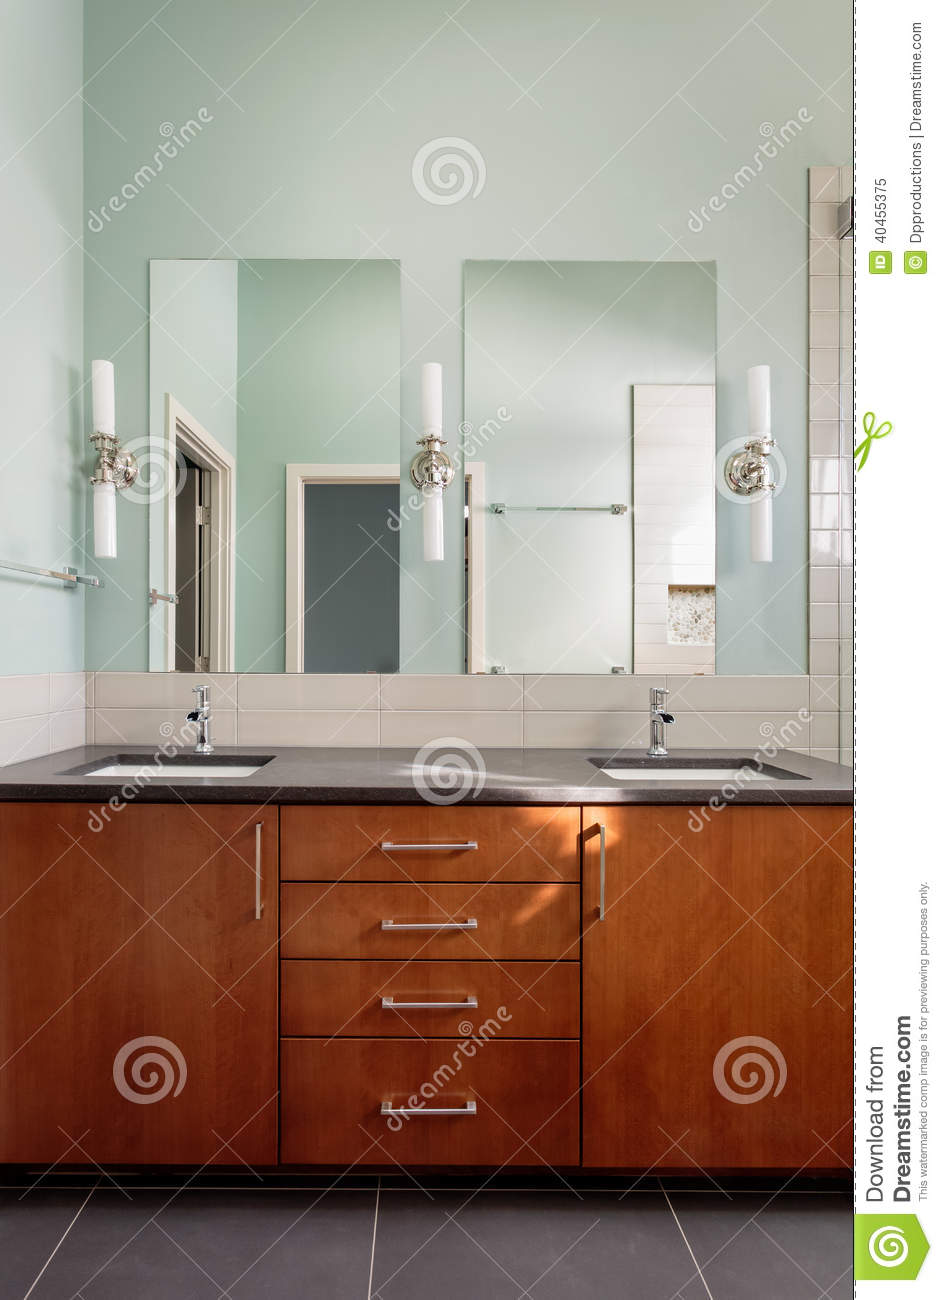 double vier et miroirs de vanit dans la salle de bains moderne image stock image 40455375. Black Bedroom Furniture Sets. Home Design Ideas